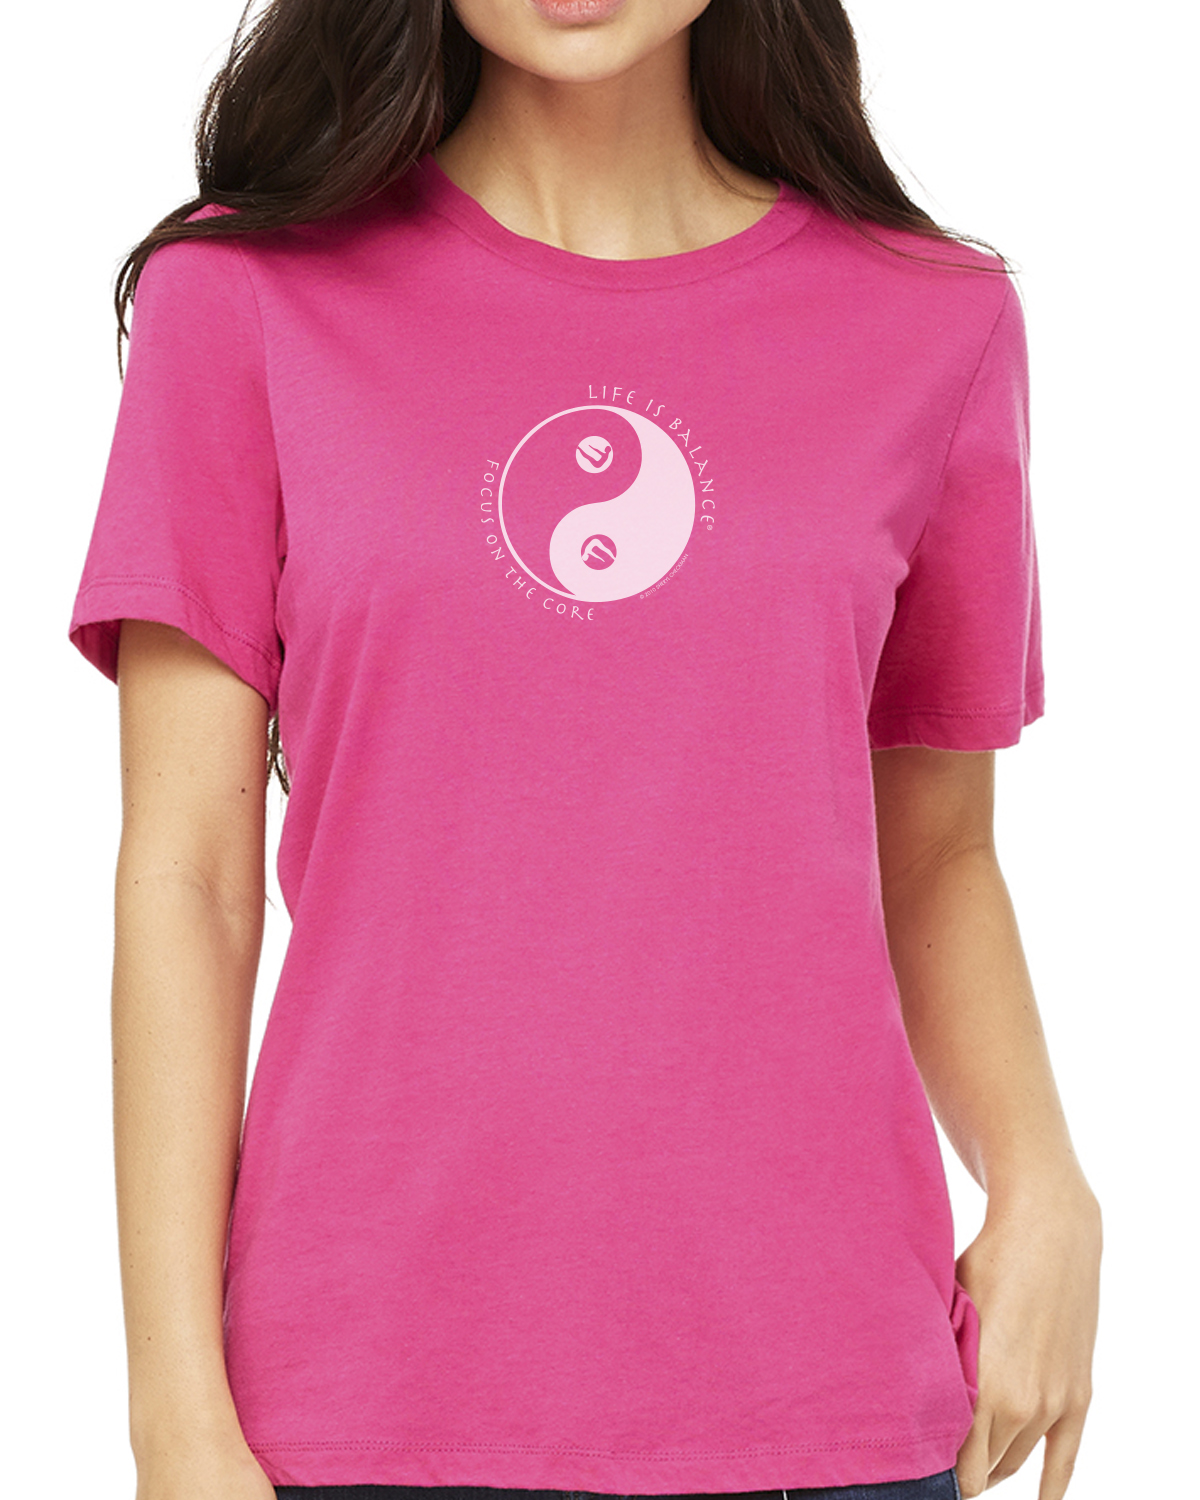 Pilates T-Shirt for Women (Berry)